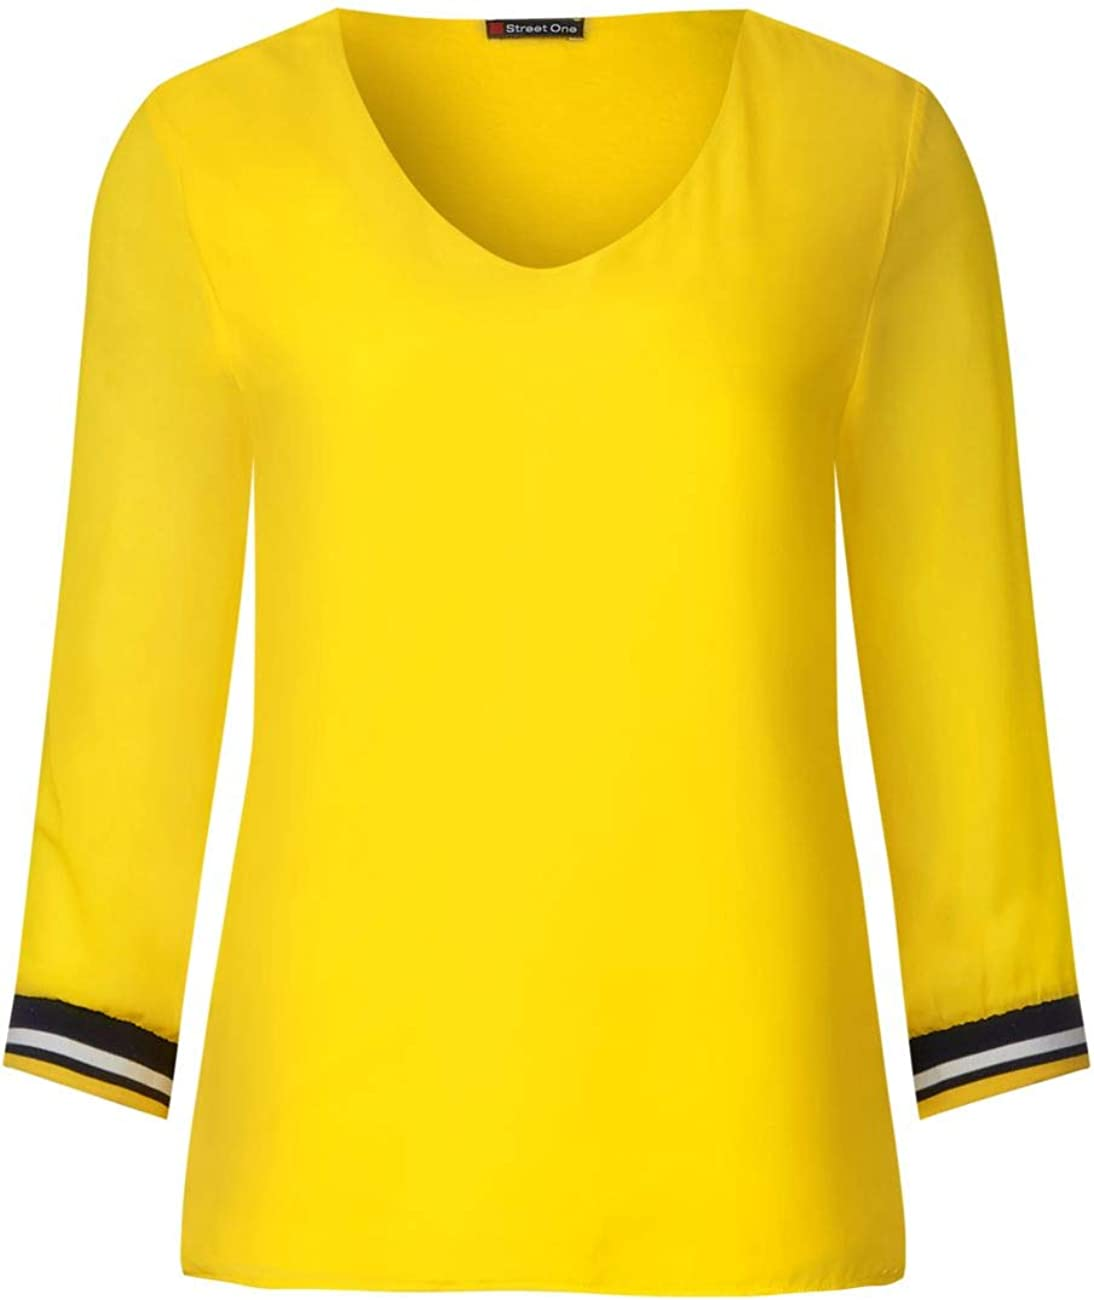 Shirt Manches Longues Femme Street One T